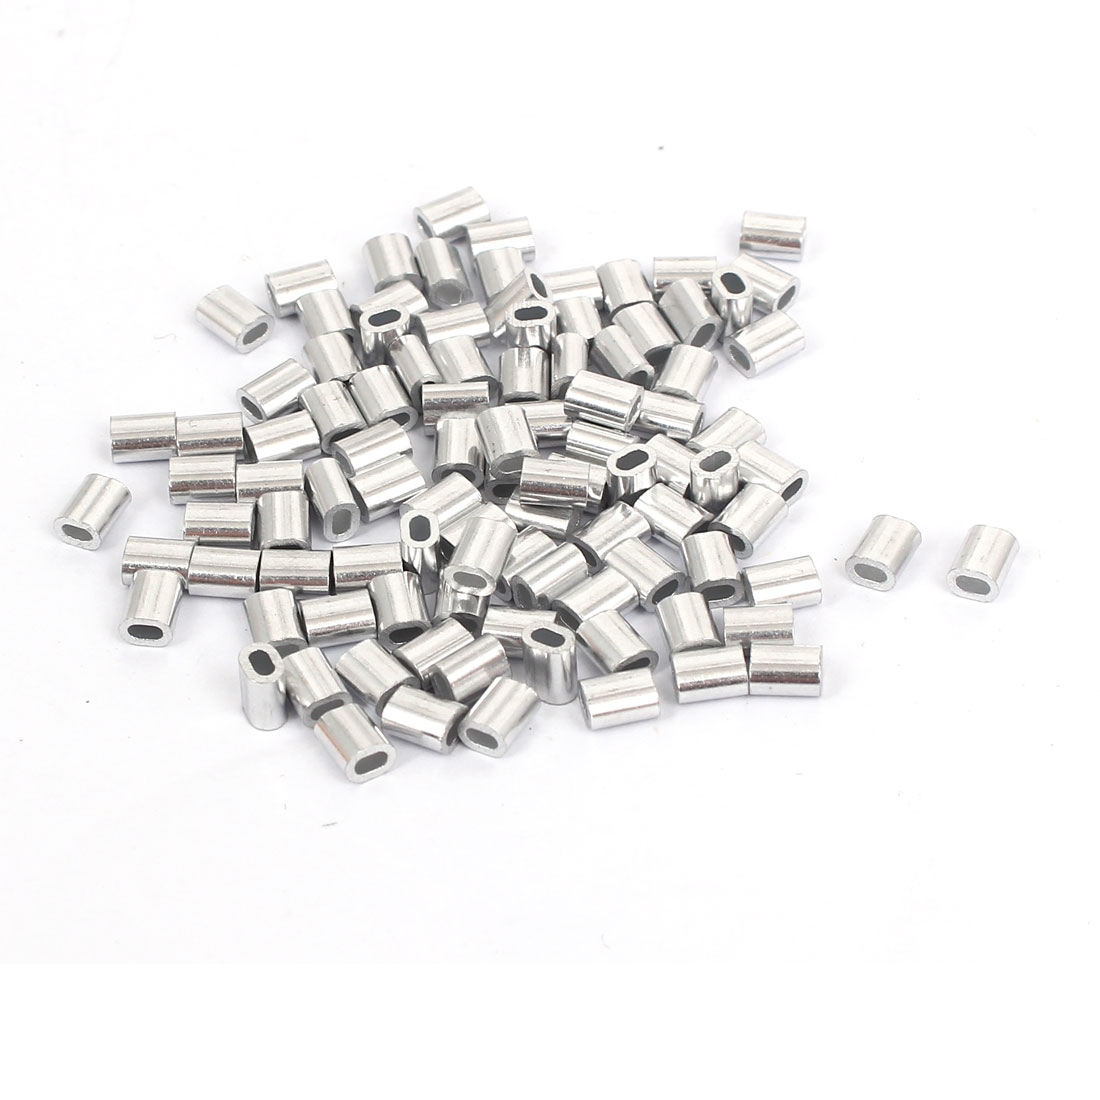 100pcs M1 Oval Aluminum Sleeves Clamps for 0.9MM-1MM Stianless Steel Wire Rope